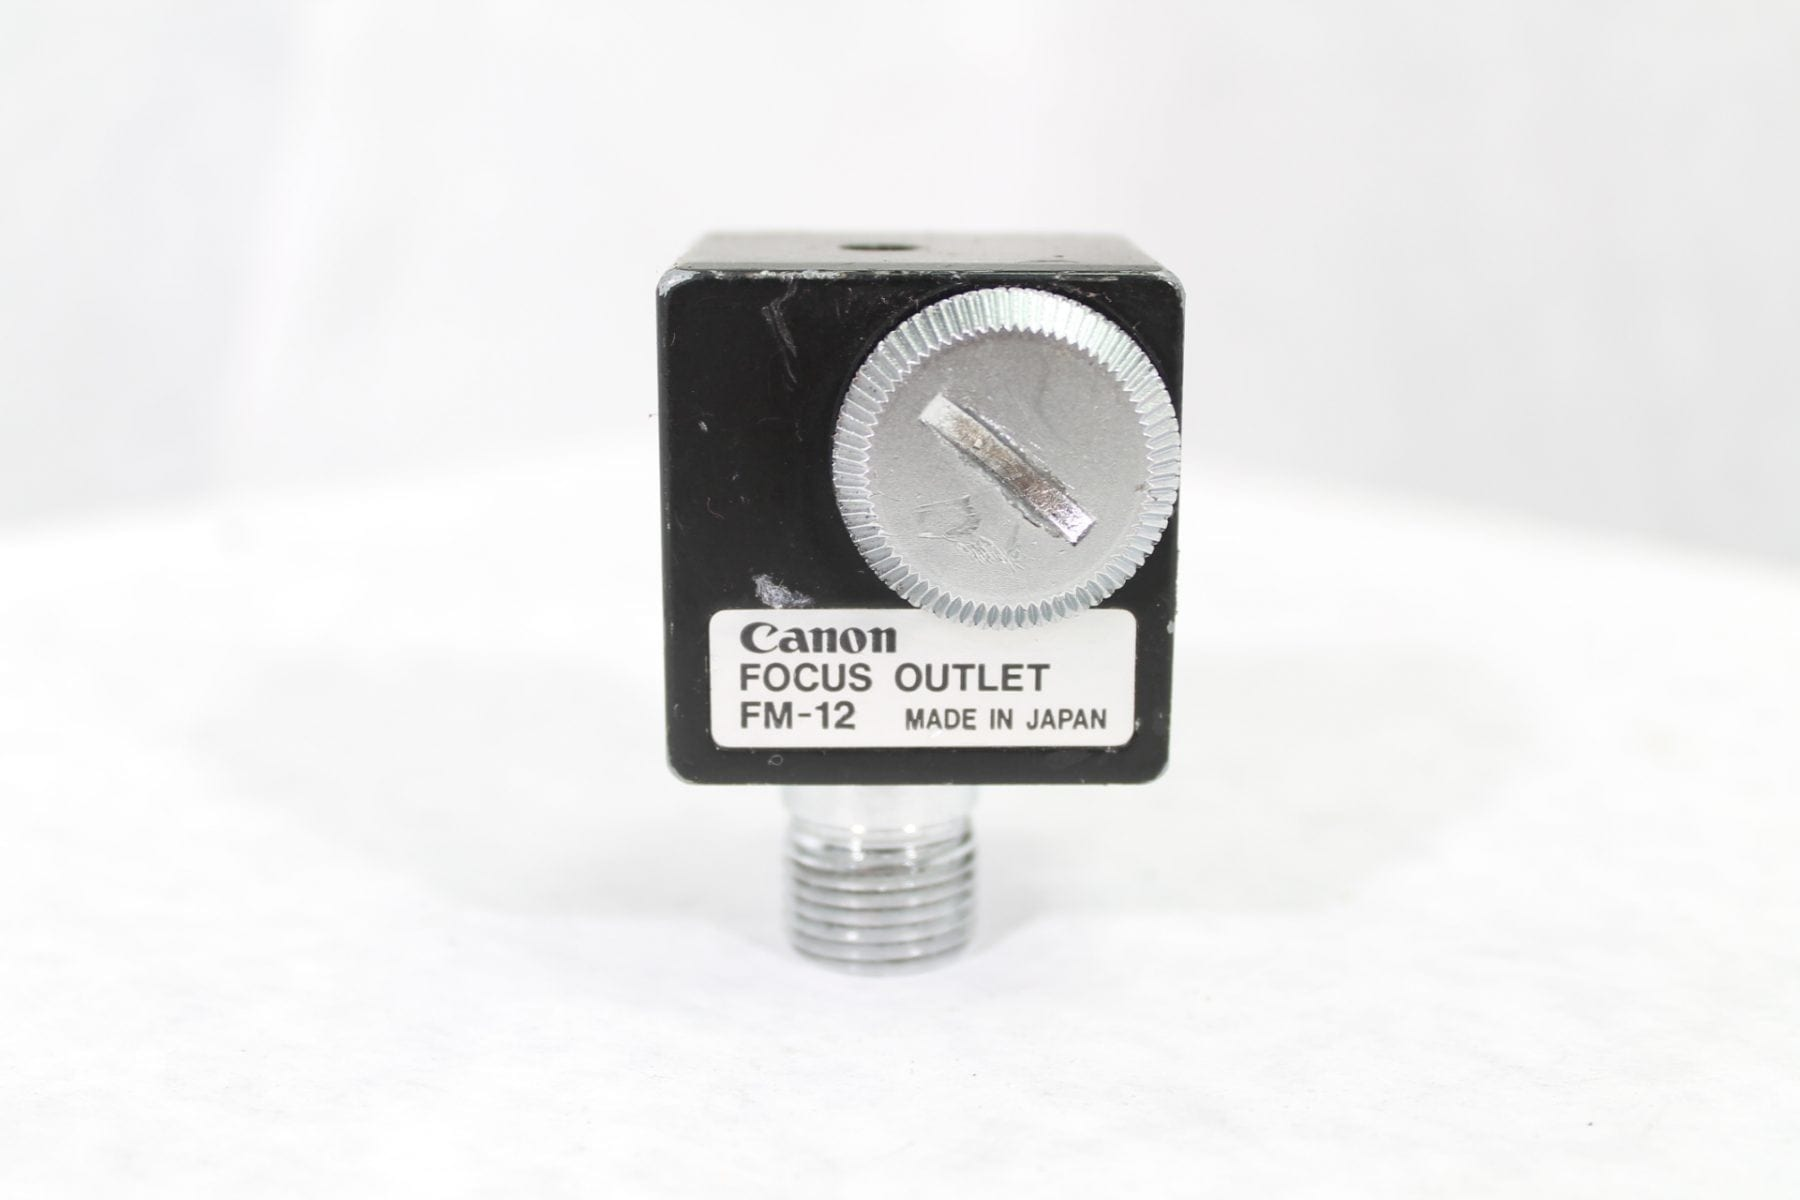 Canon FM-12 Focus Outlet Label